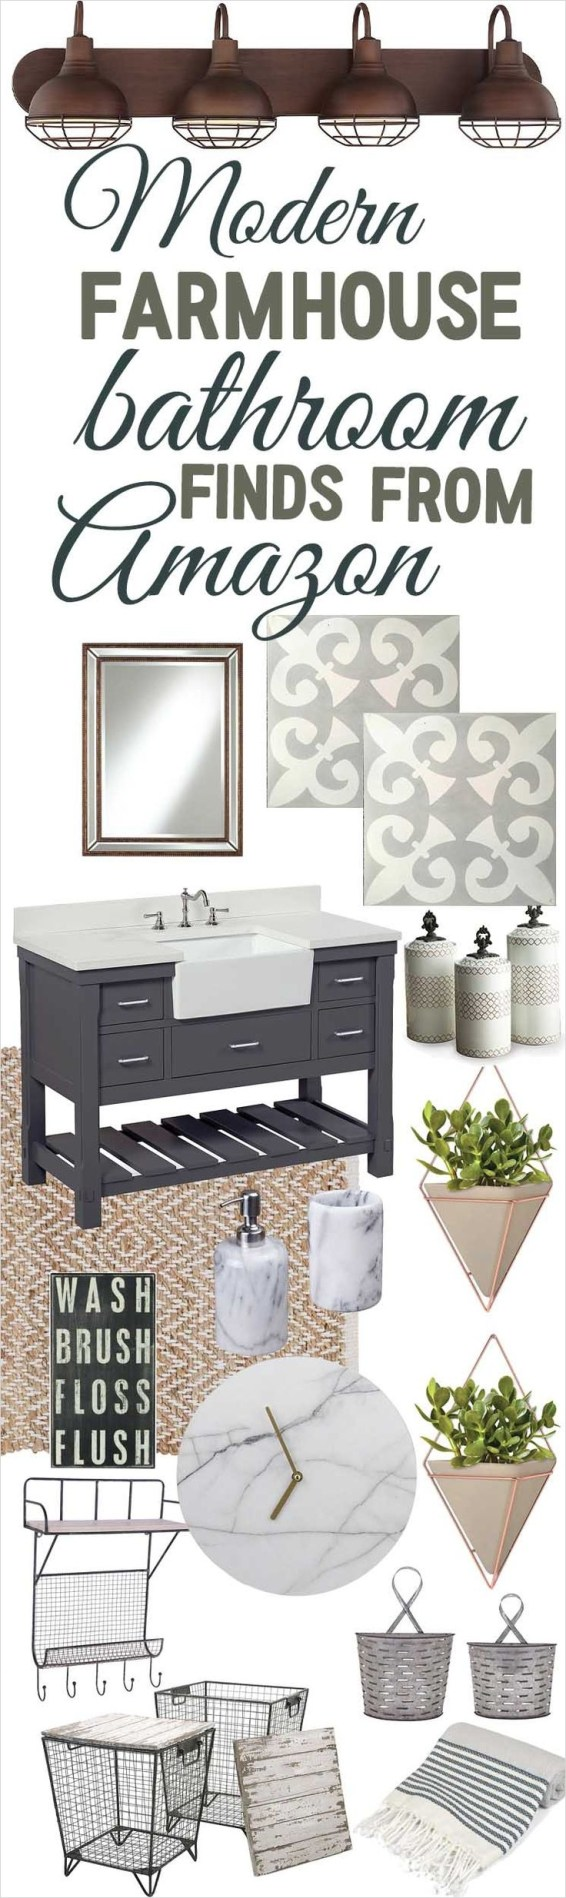 41 Beautiful Farmhouse Bathroom Accessories Ideas 91 Best 25 Modern Farmhouse Bathroom Ideas On Pinterest 3